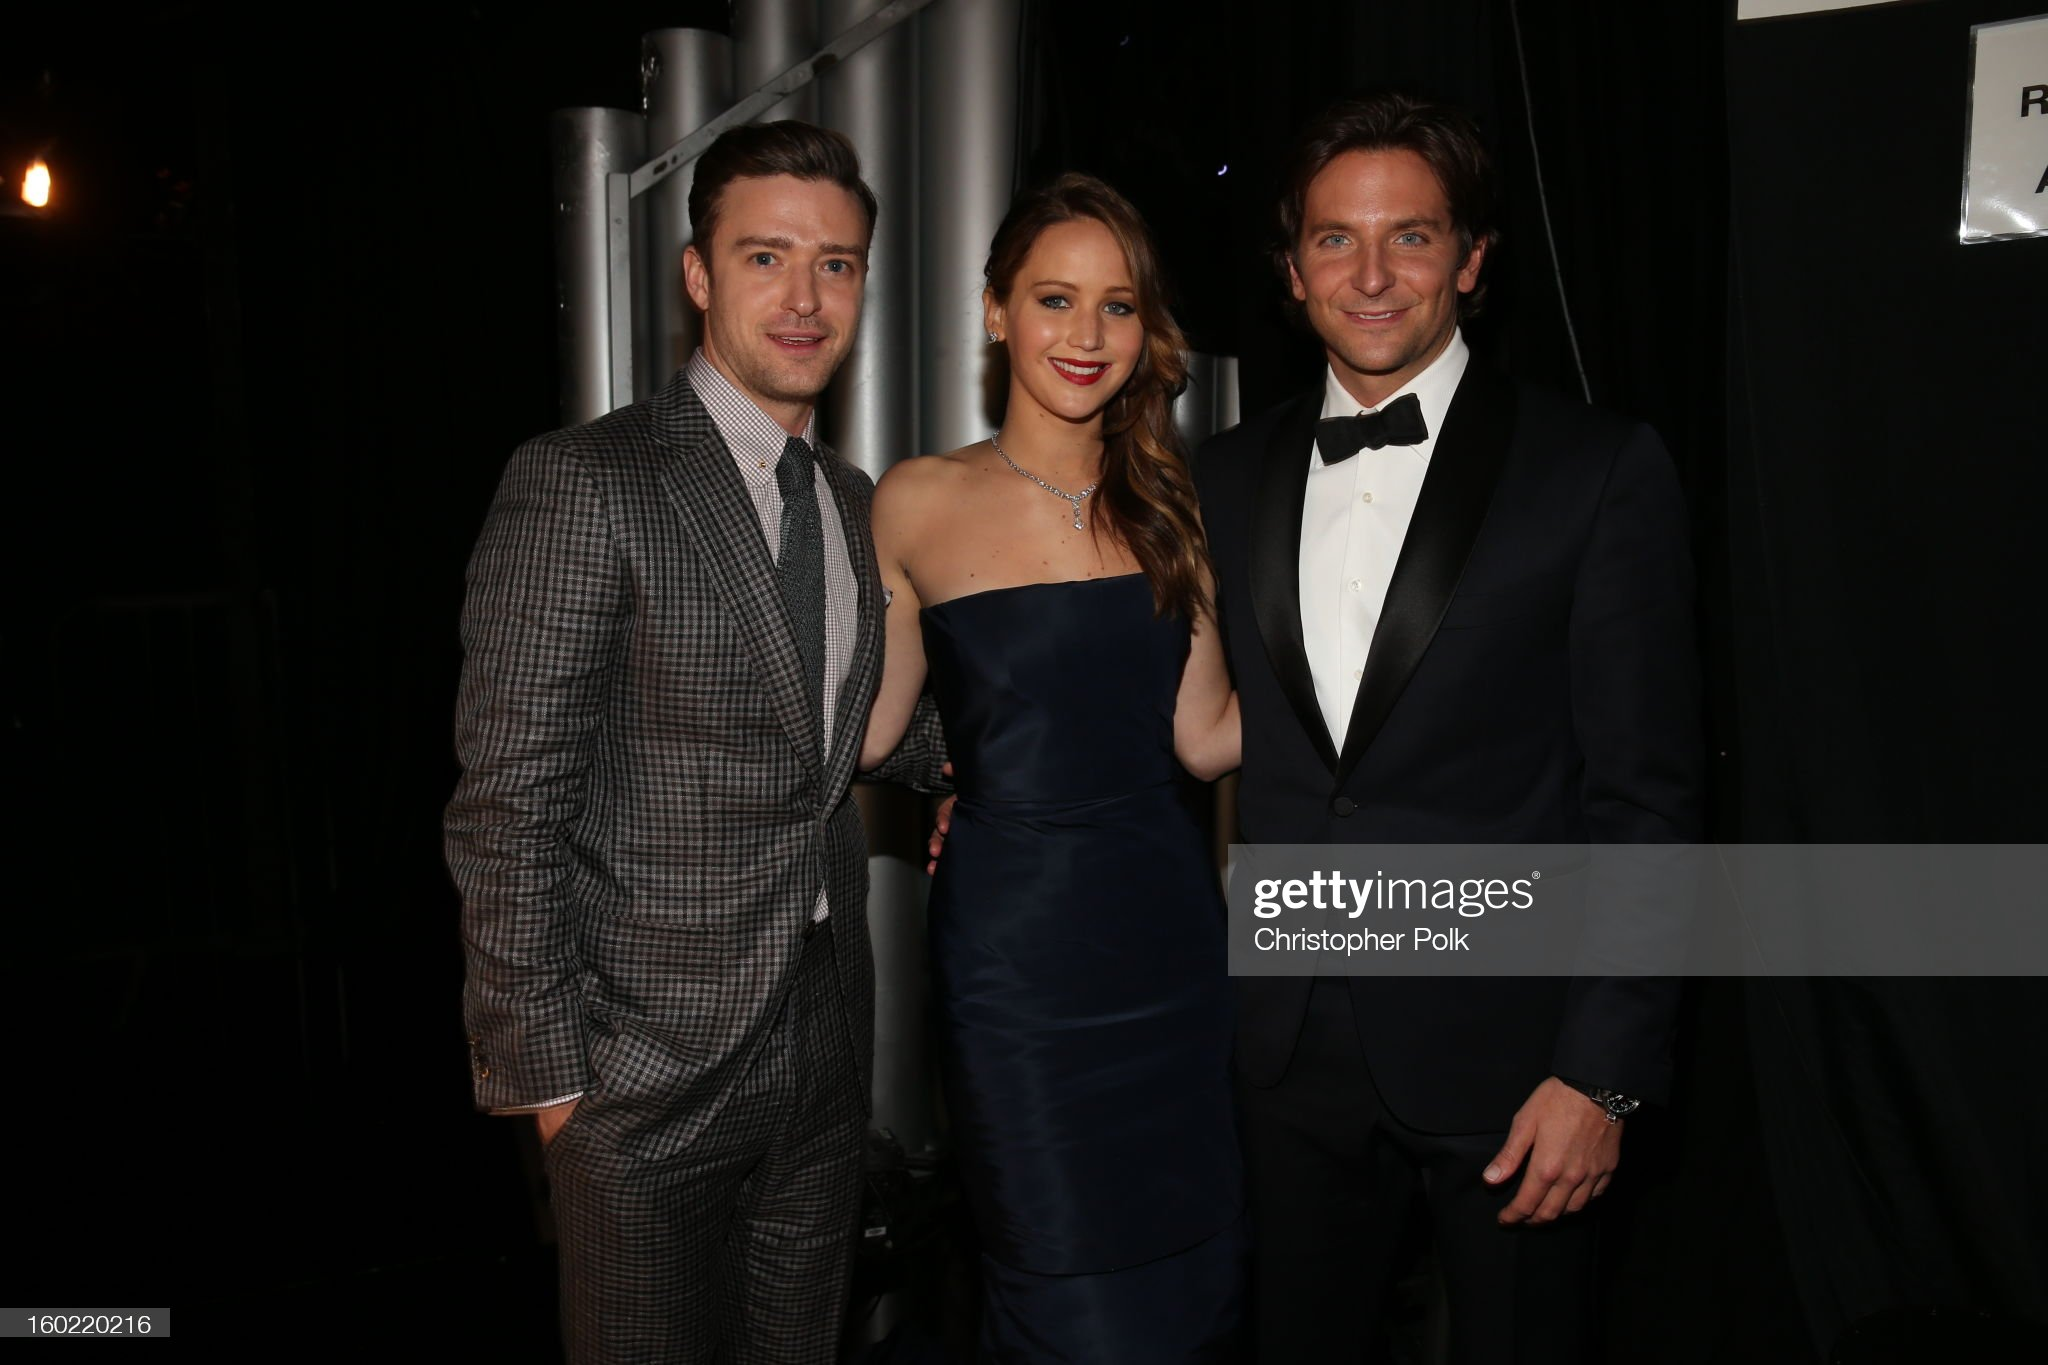 ¿Cuánto mide Justin Timberlake? - Altura - Real height Actors-justin-timberlake-jennifer-lawrence-and-bradley-cooper-attend-picture-id160220216?s=2048x2048